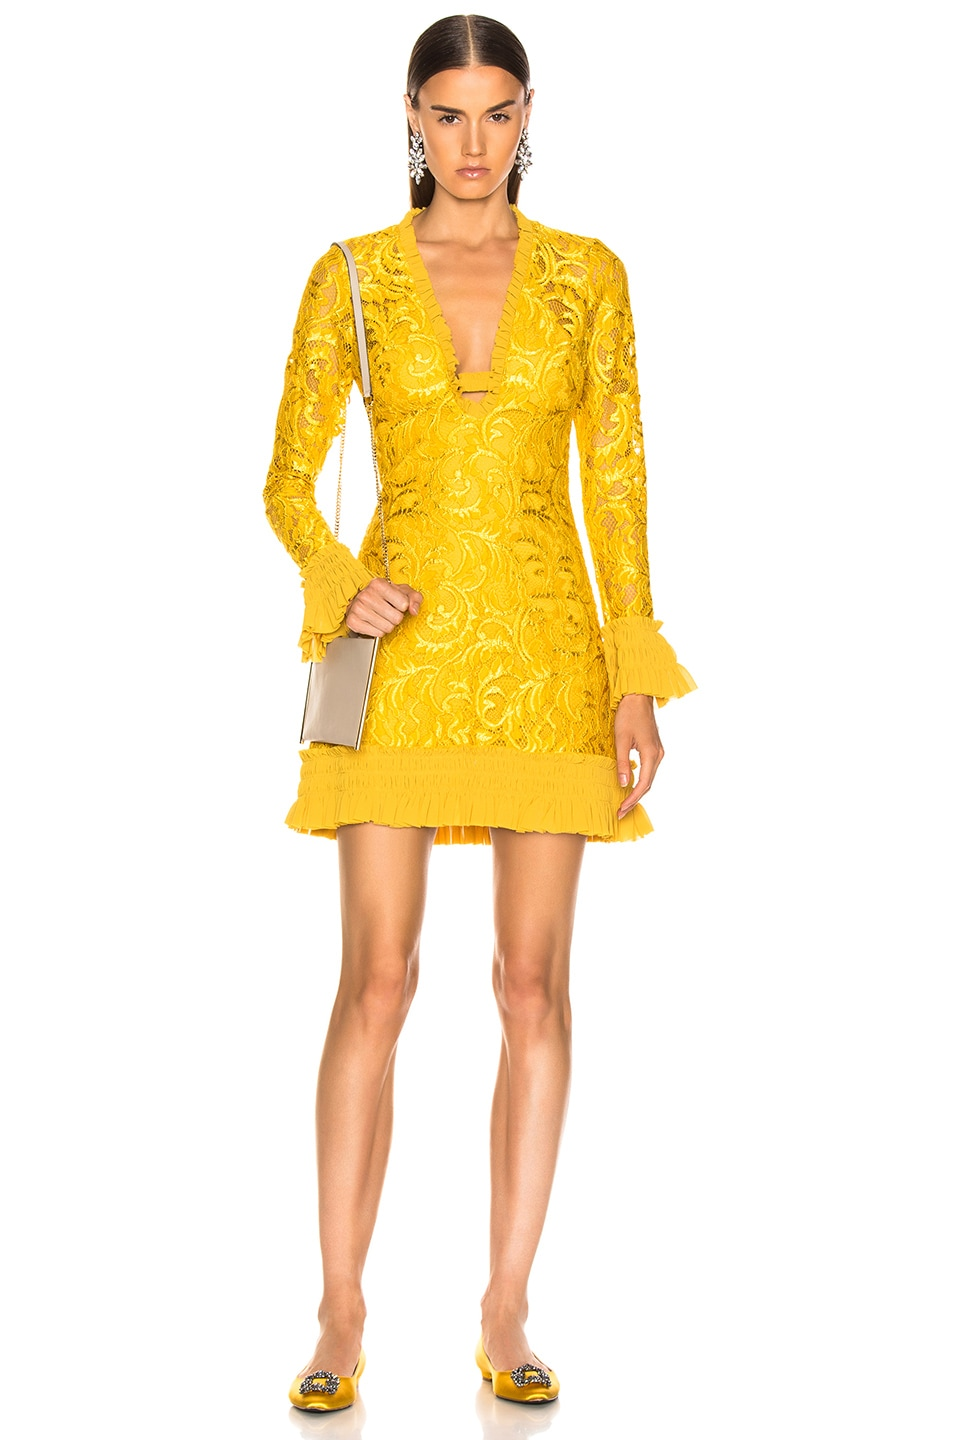 Image 1 of Alexis Nuray Dress in Gold Lace